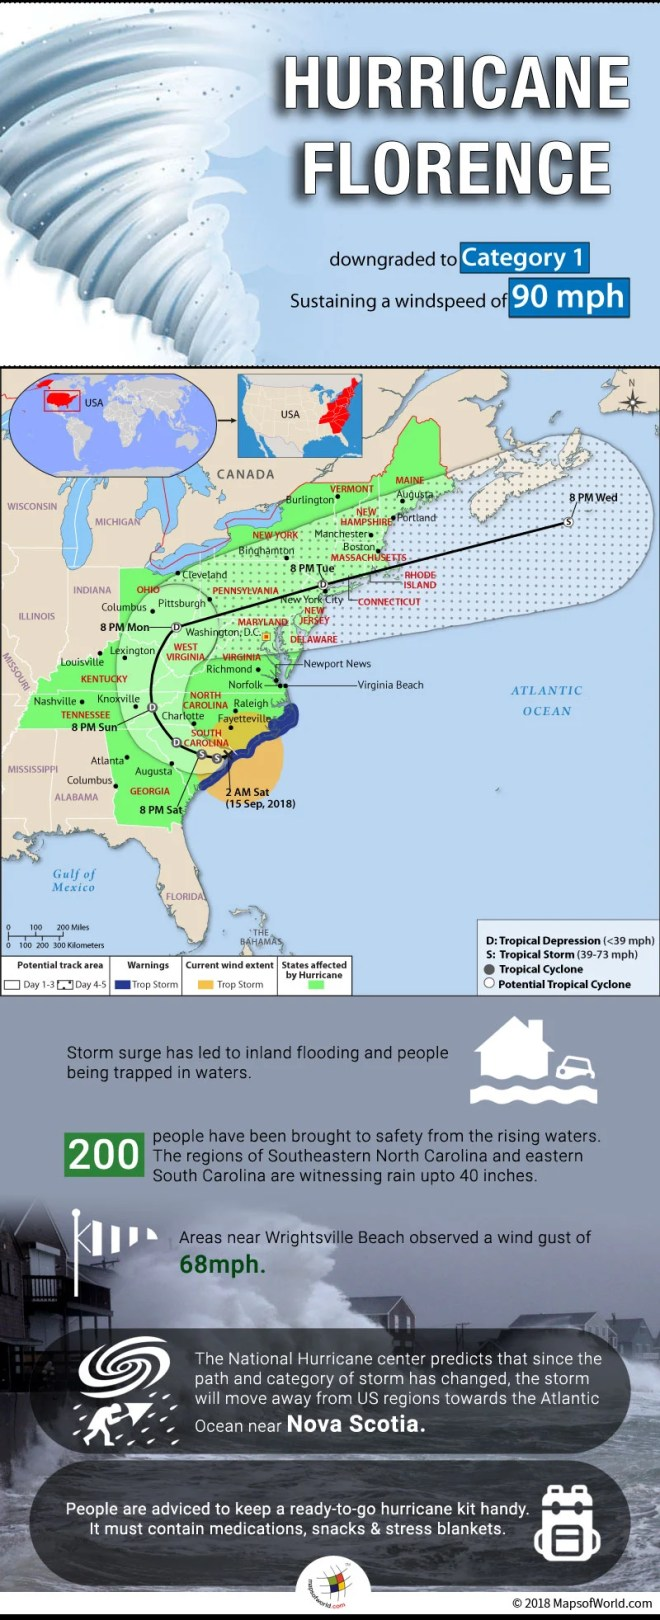 Infographic elaborating US states affected by Hurricane Florence